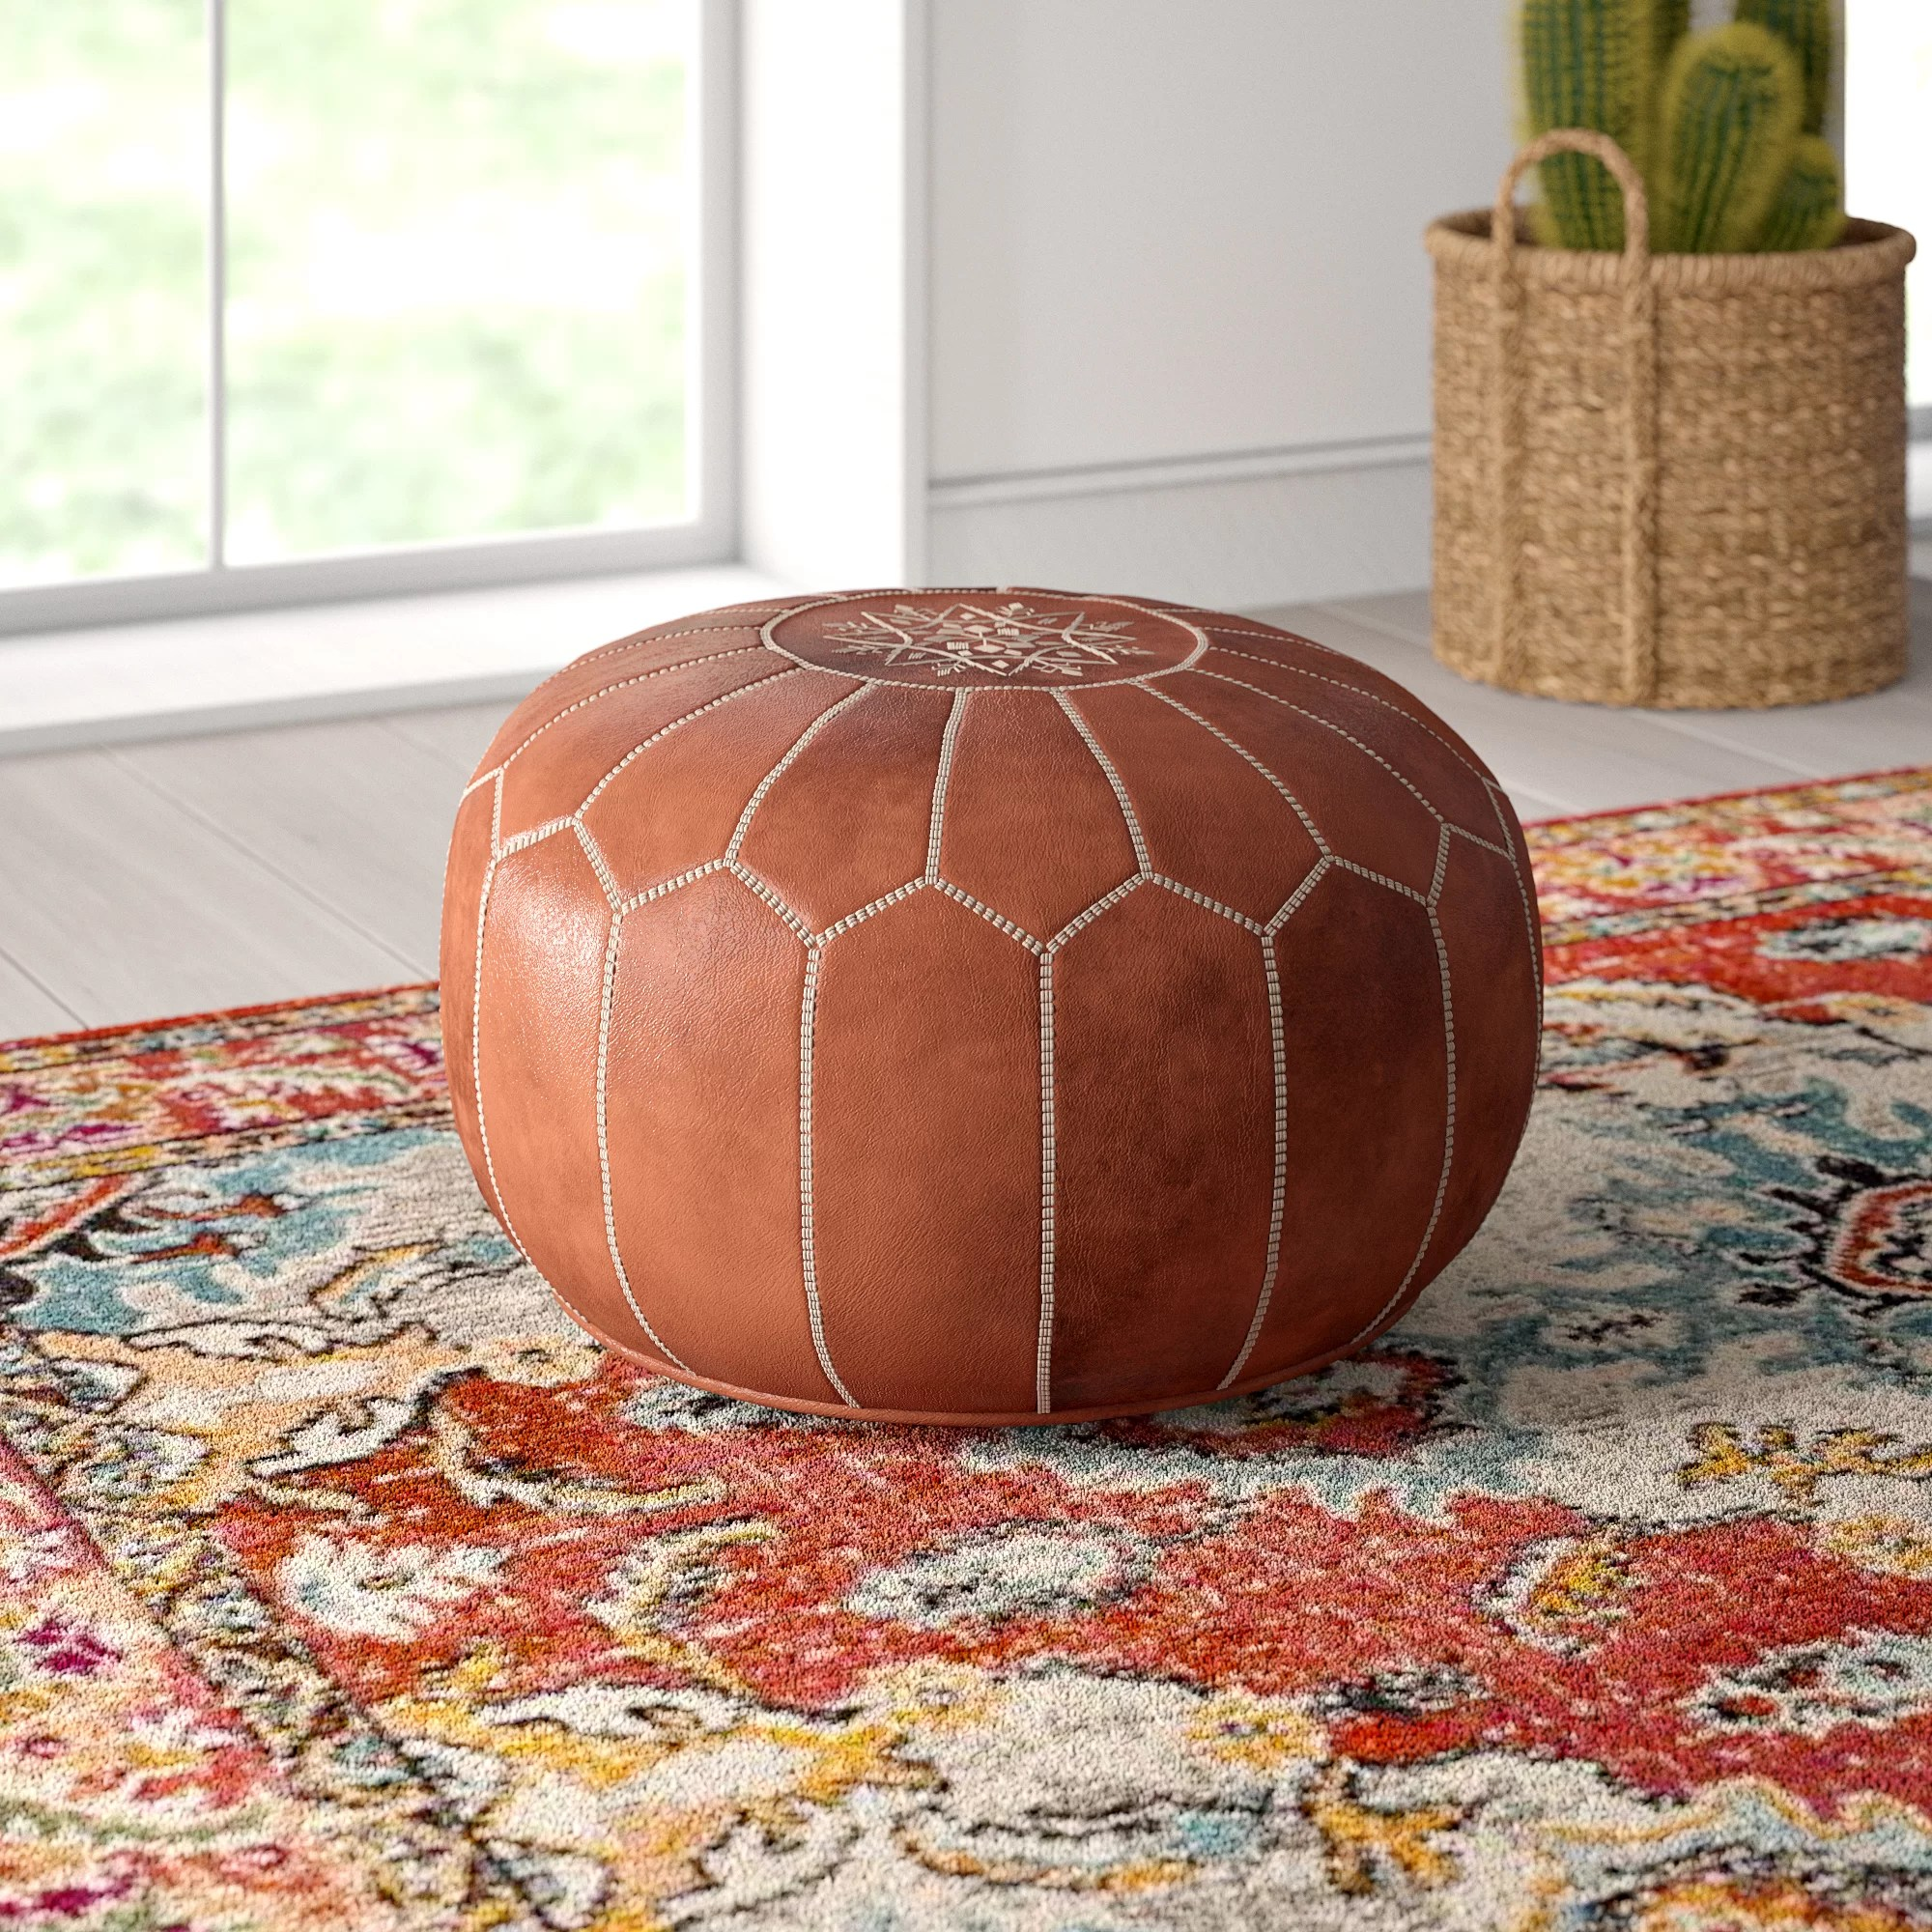 Moroccan Leather Pouf Design Sit Down Pinterest Leather Carolos Leather Pouf